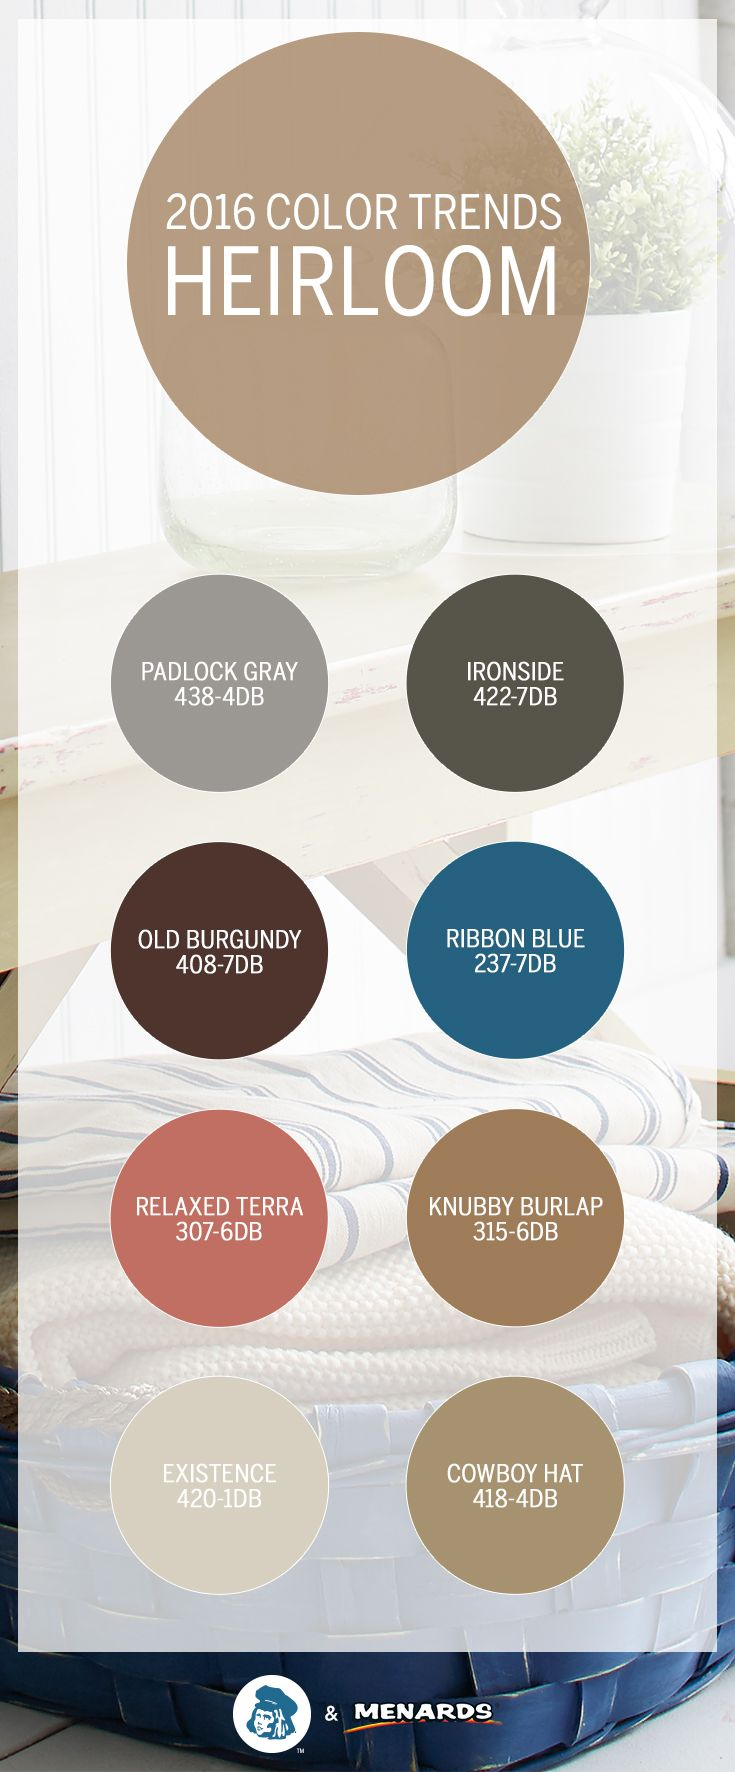 Some Things Are Just Timeless Like The Earthy Tones Of Dutch Boy S Heirloom Color Trend Learn Mor Dutch Boy Paint Colors Dutch Boy Paint House Paint Interior